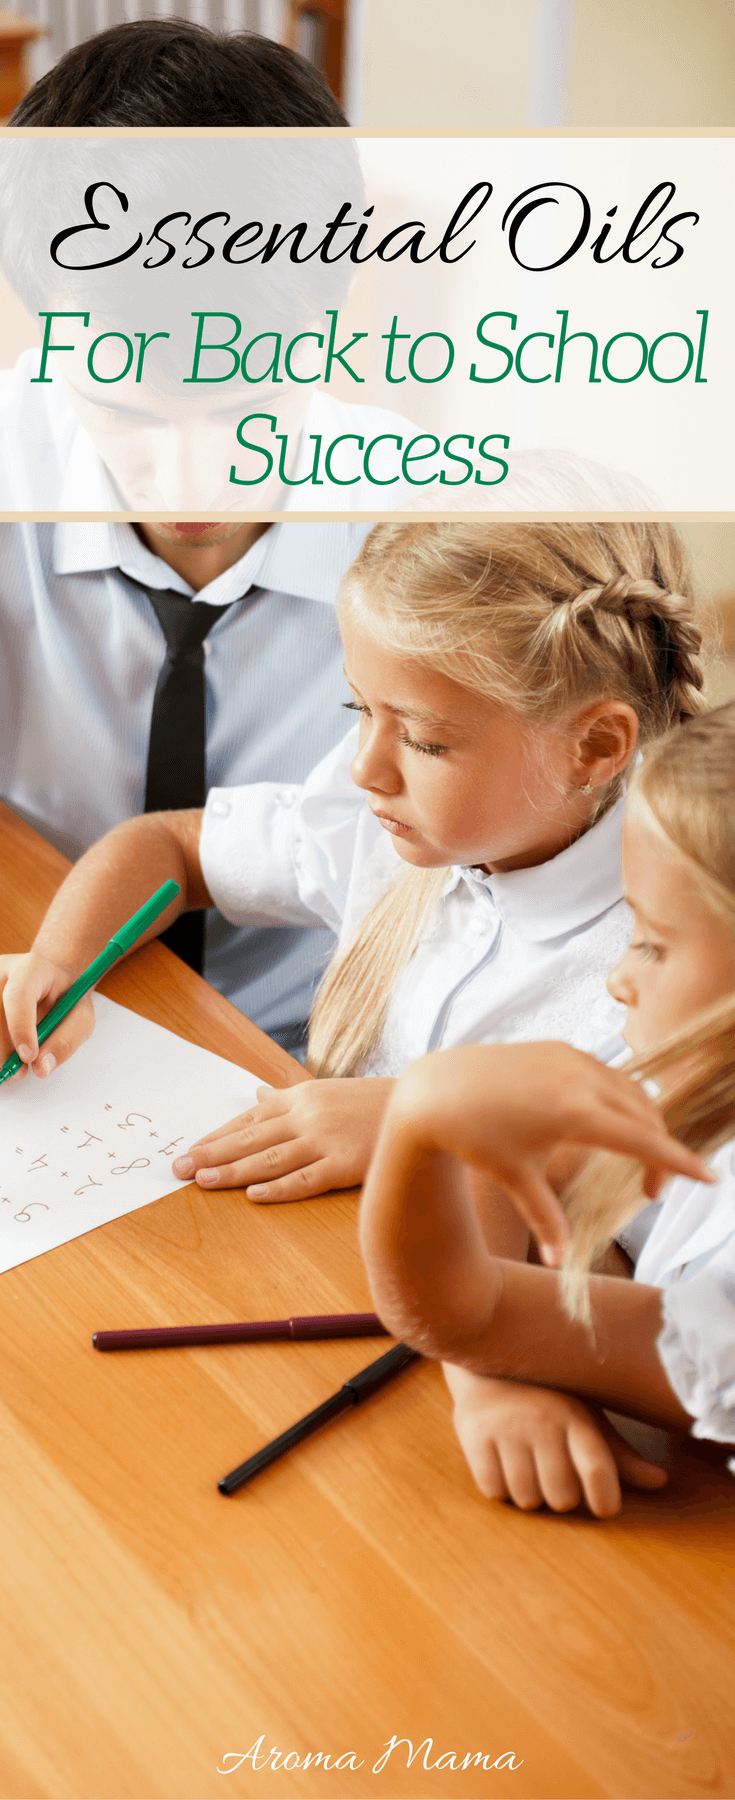 Are you getting ready for another school year? Learn the six essential oil products that can help kids for back to school success.